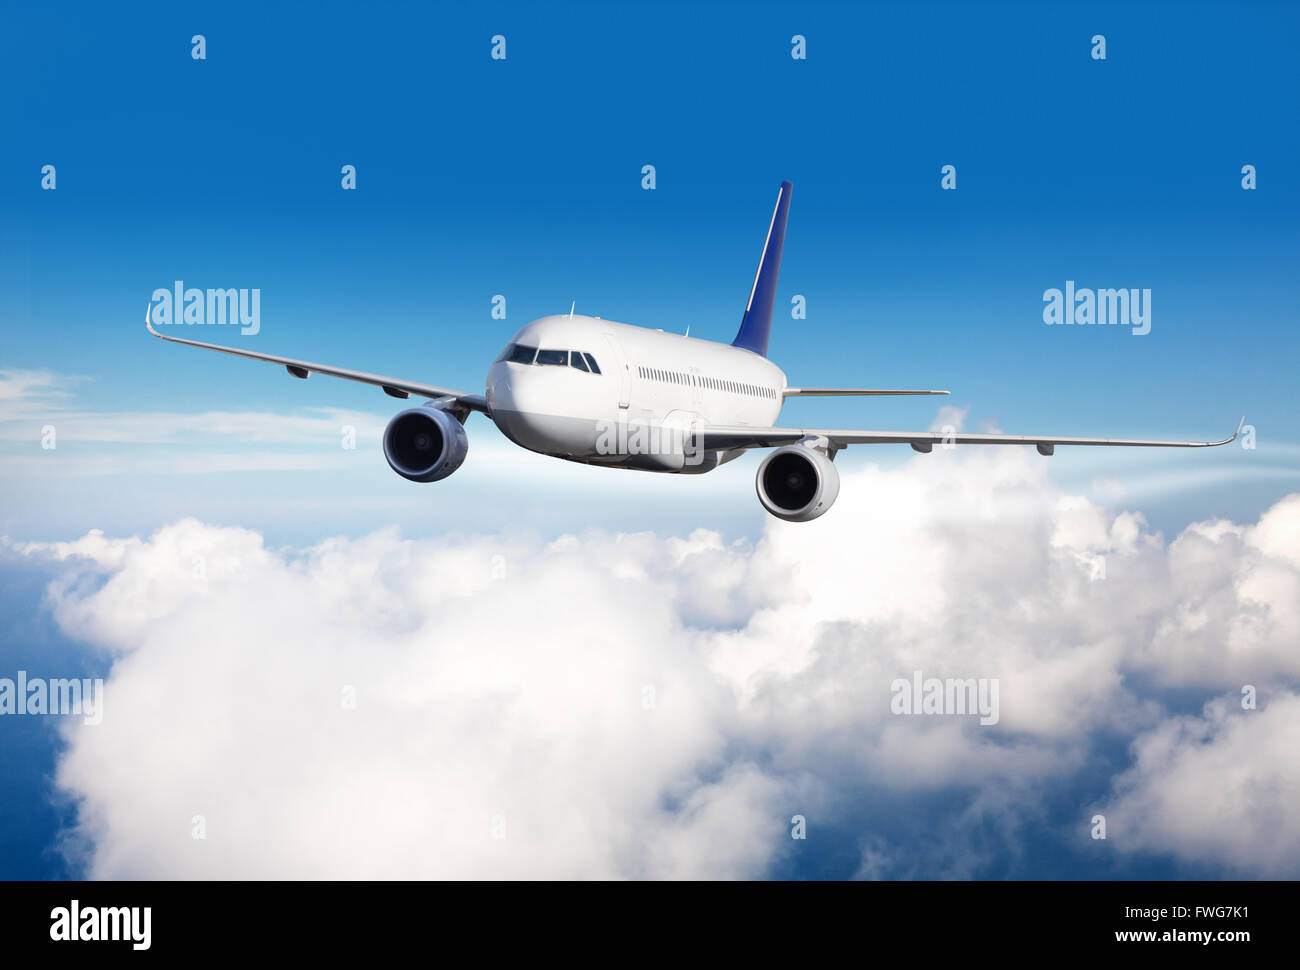 Commercial jet plane flying above clouds in day light - Stock Image